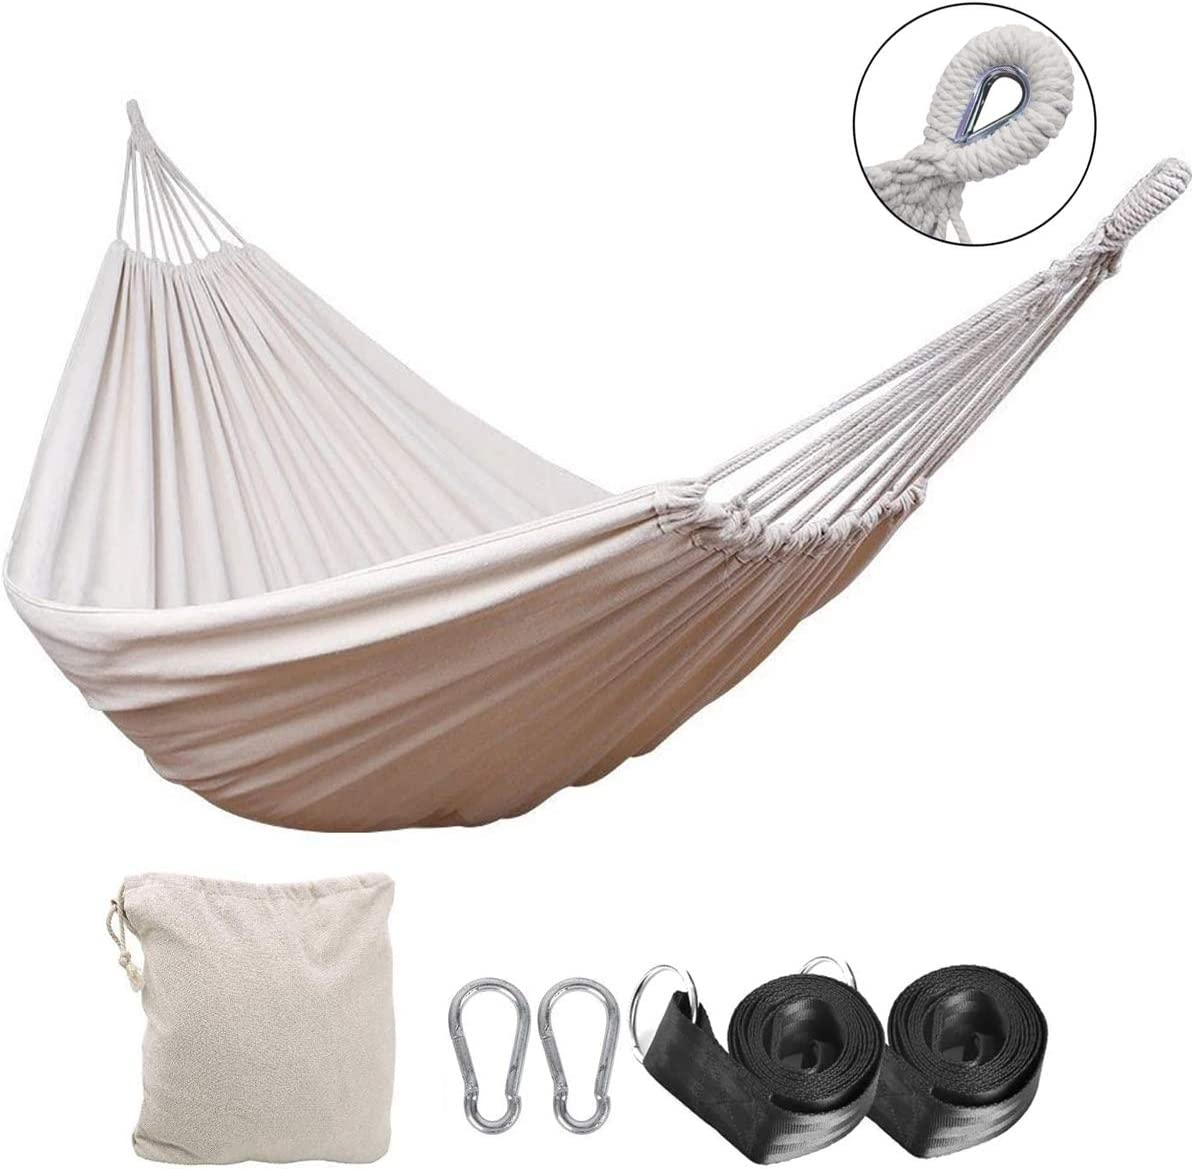 Double Hammock 2 Person Cotton Hammock Patio Porch Garden Portable Lightweight Travel, Outdoor, Indoor, Backpacking, Hiking Survival Beige